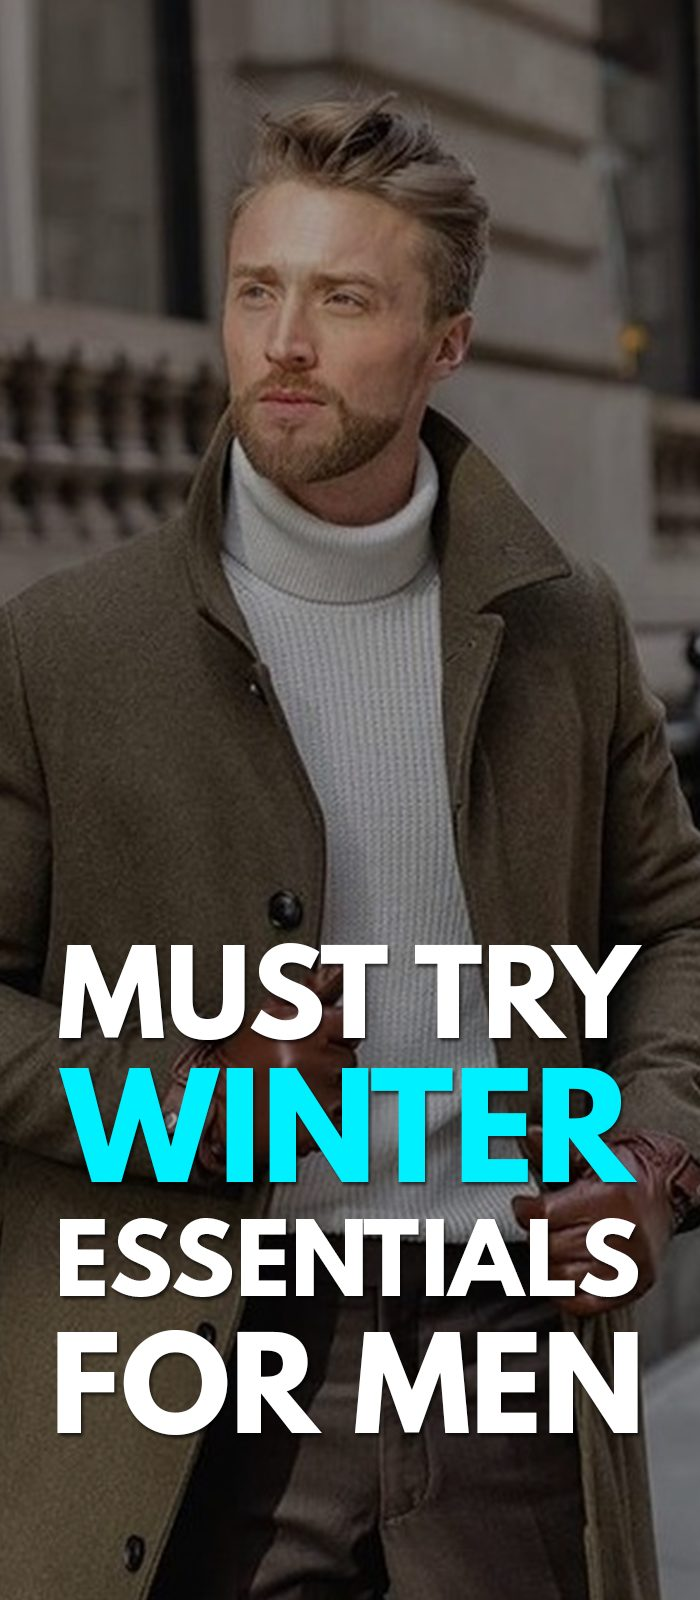 5 Must Have Winter Essentials for Men